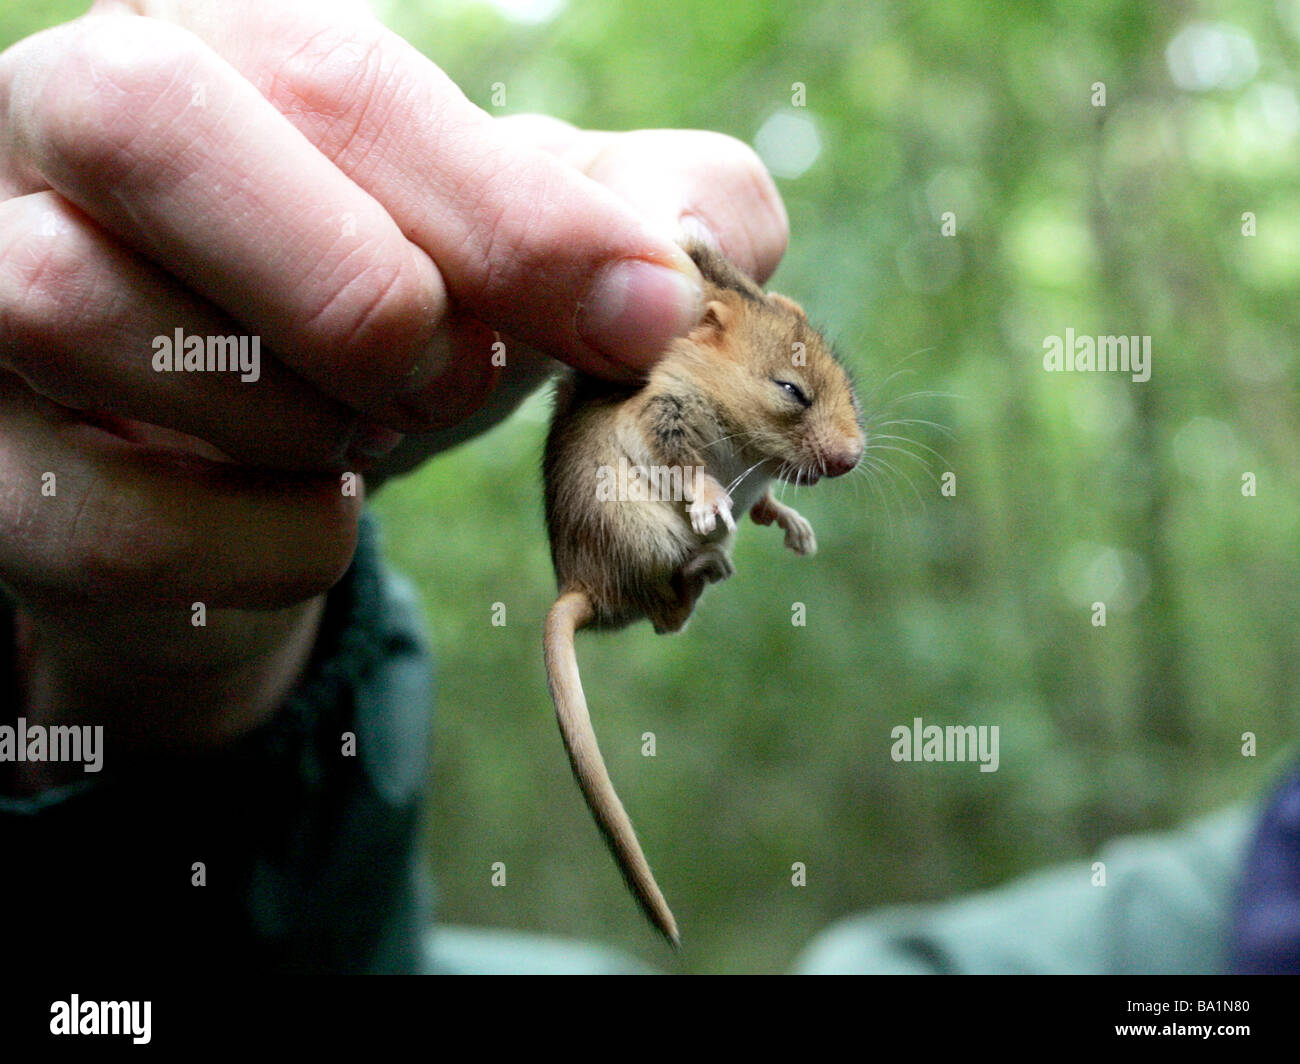 A tiny doormouse being held - Stock Image